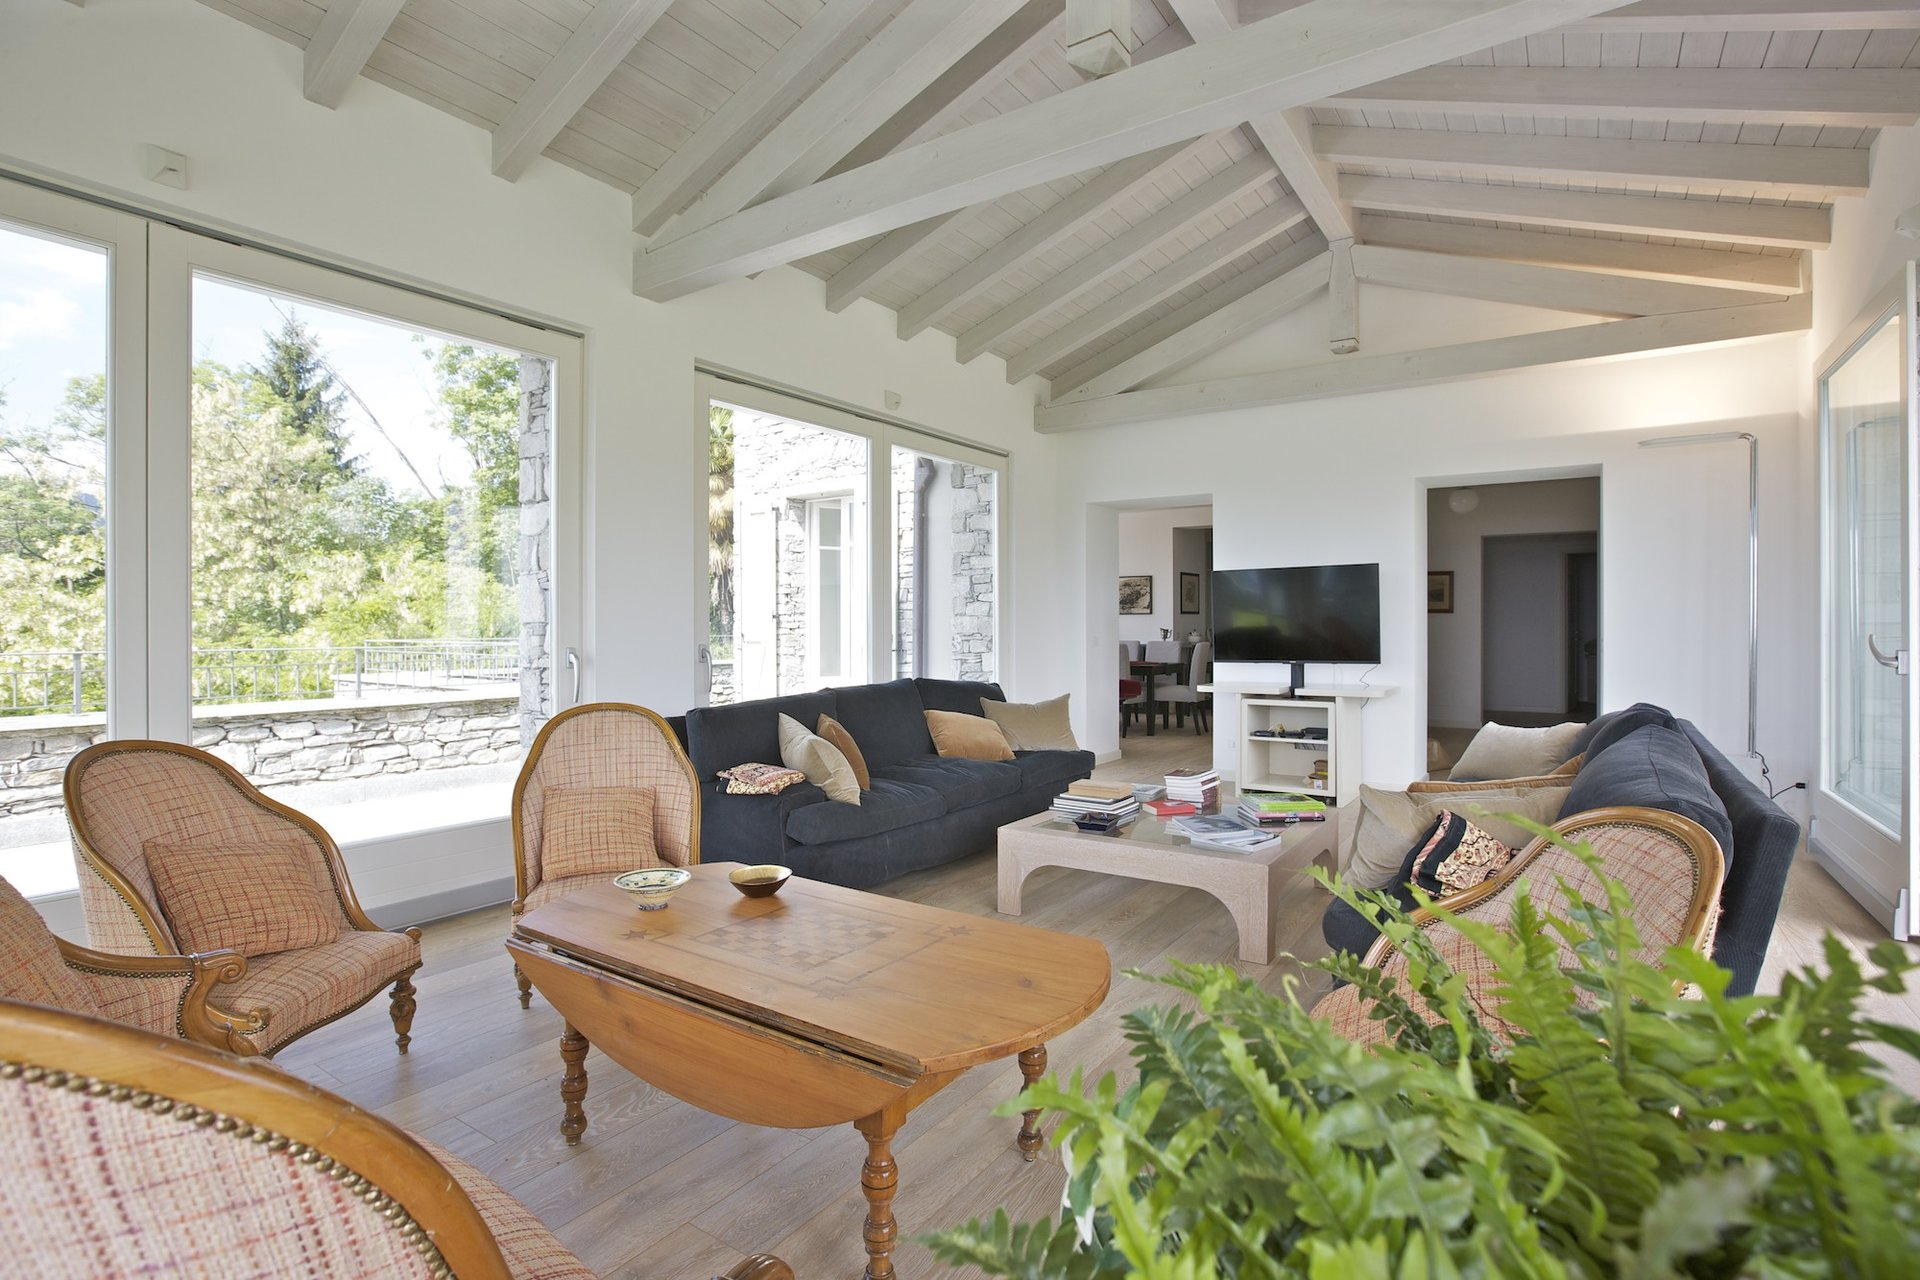 Luxury new villa for sale in Verbania - living room